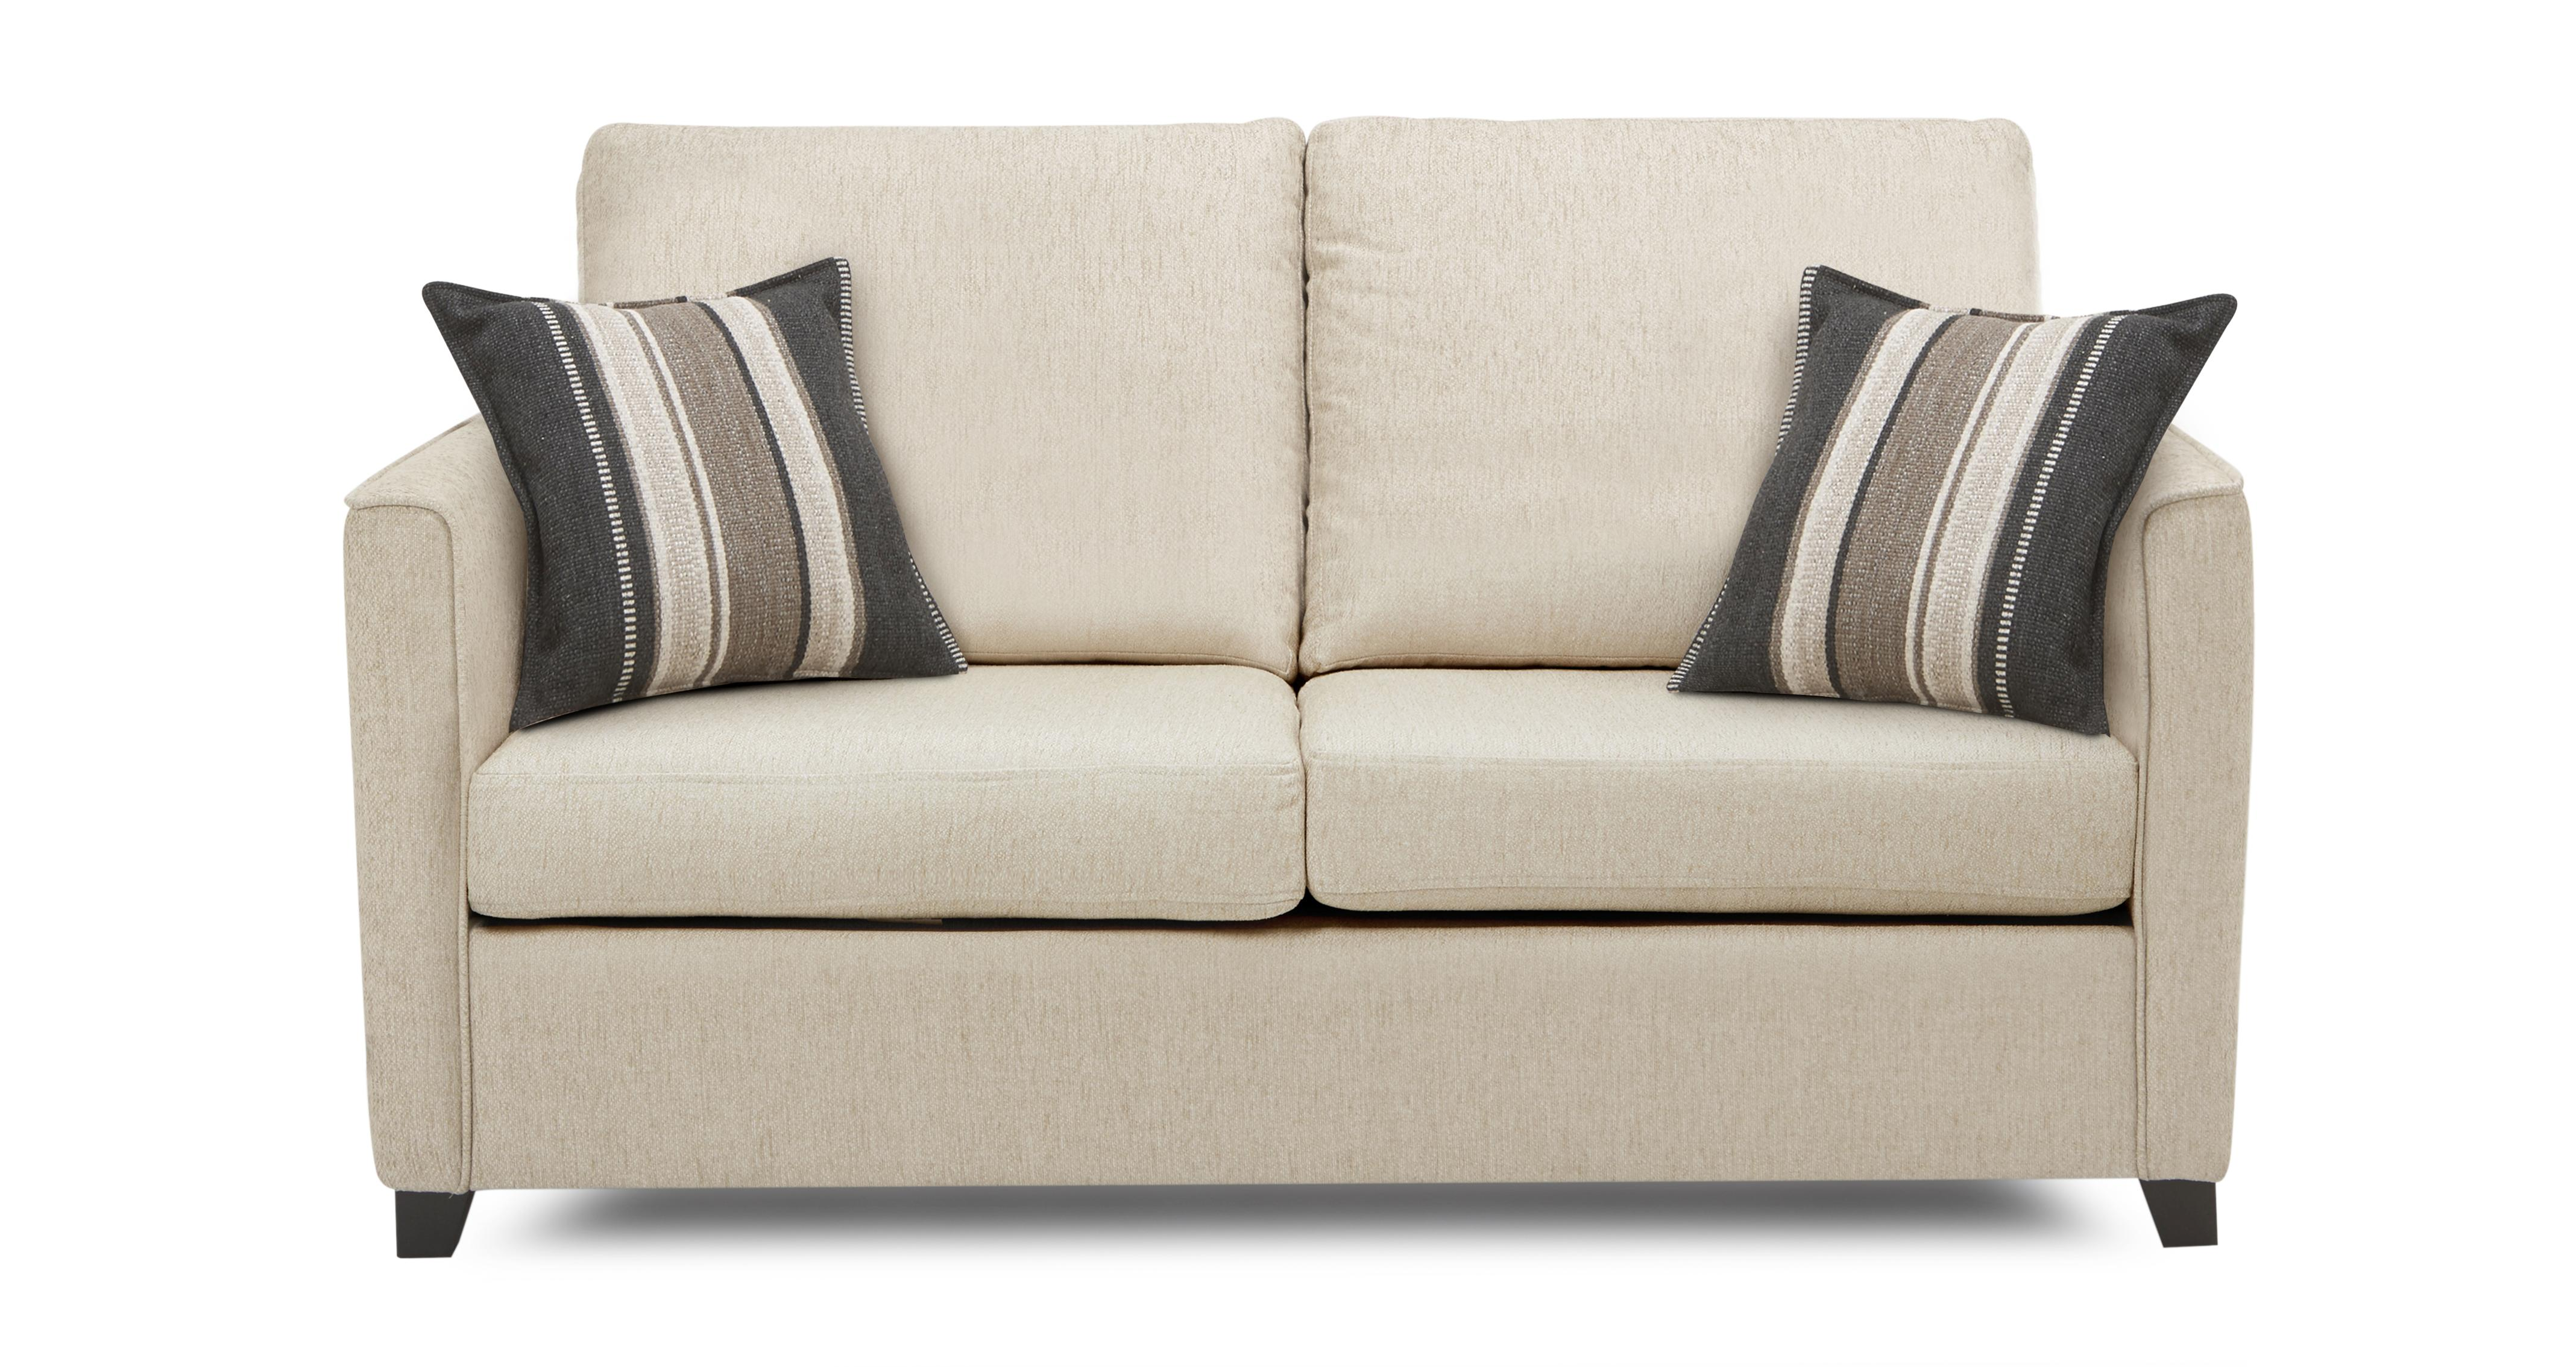 Lucia 2 Seater Deluxe Sofa Bed Dfs